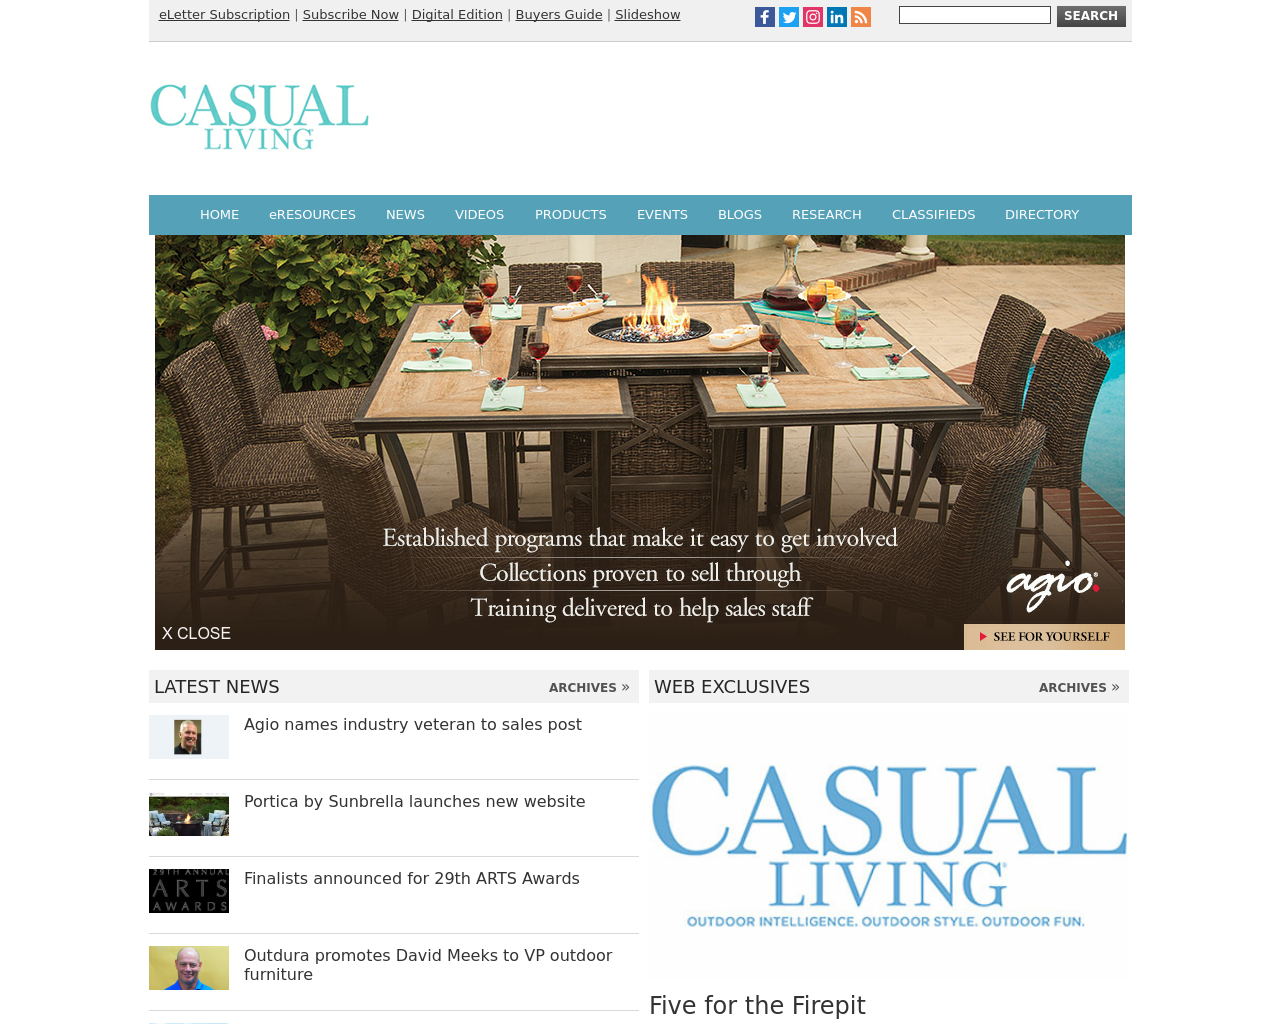 Casual-Living-Advertising-Reviews-Pricing